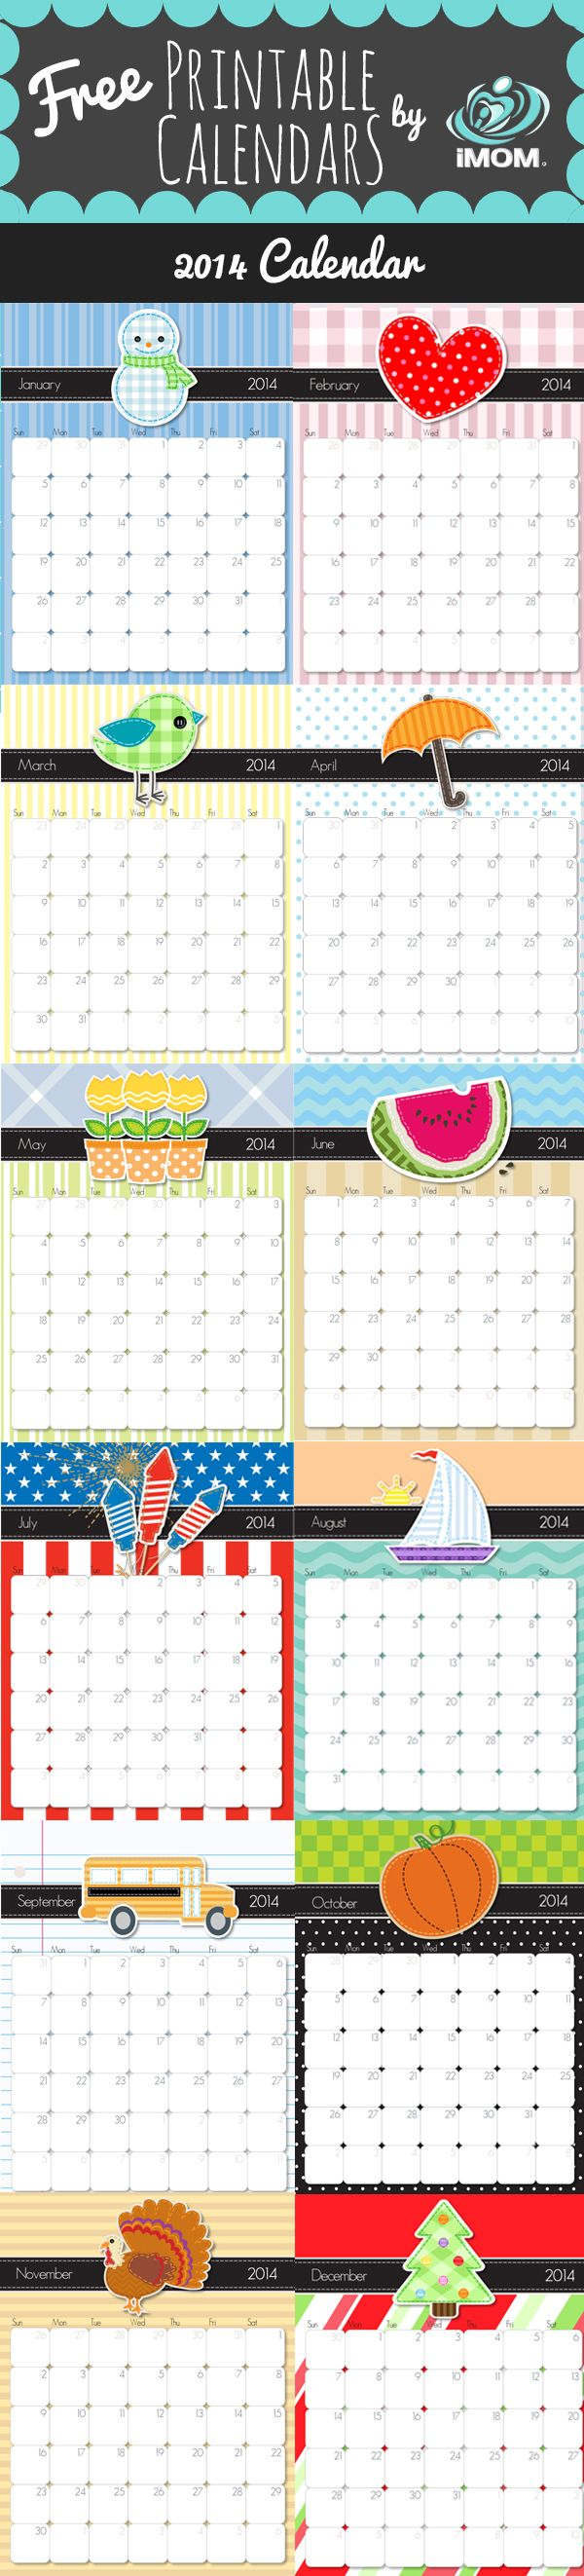 FREE Printable 2014 Calendar~  Click the download links under each month to download.